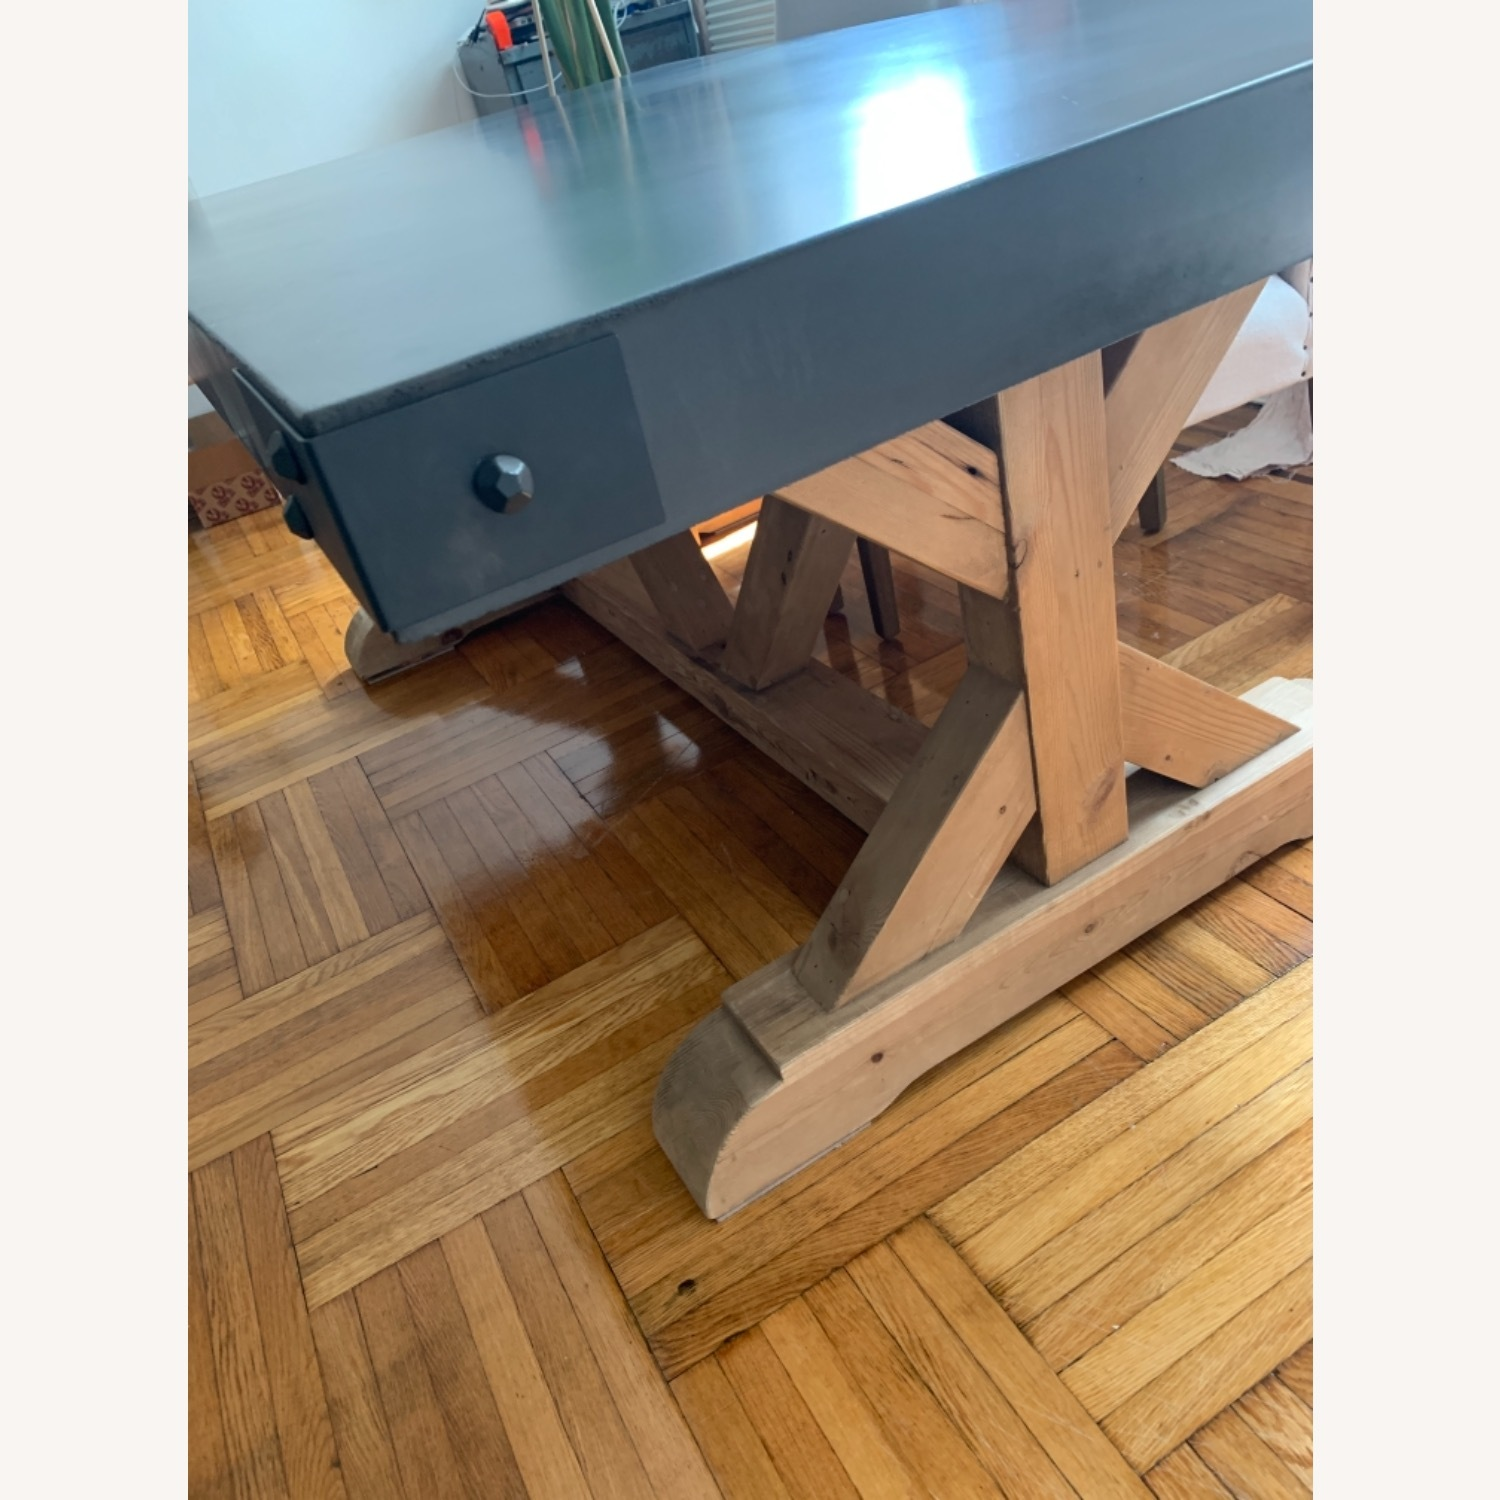 Restoration Hardware Salvaged Wood and Concrete Dining Table - image-28